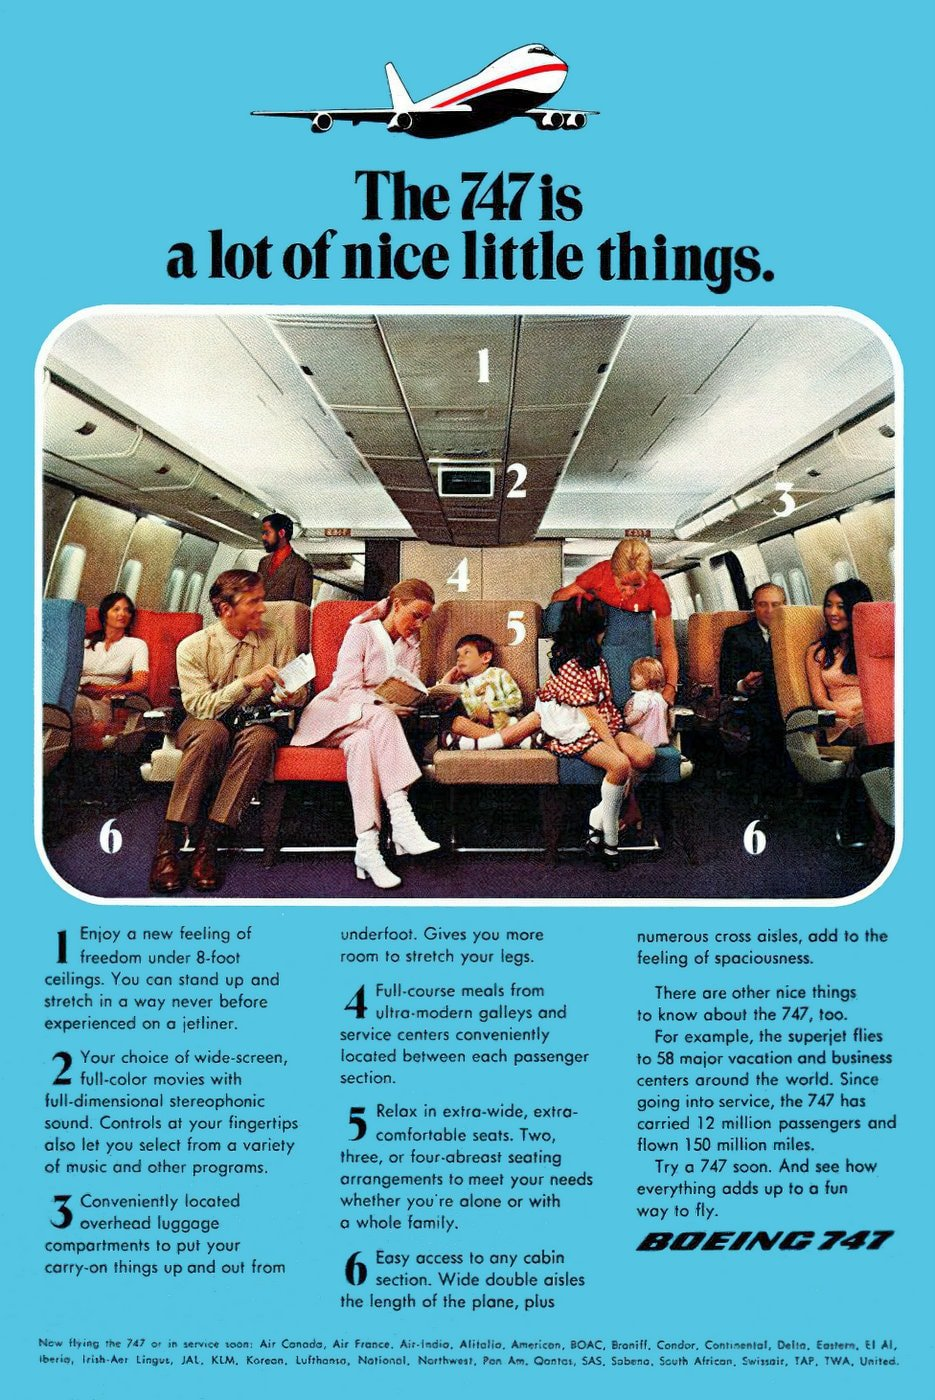 Vintage Boeing 747 airplane - A lot of nice little things (1971)